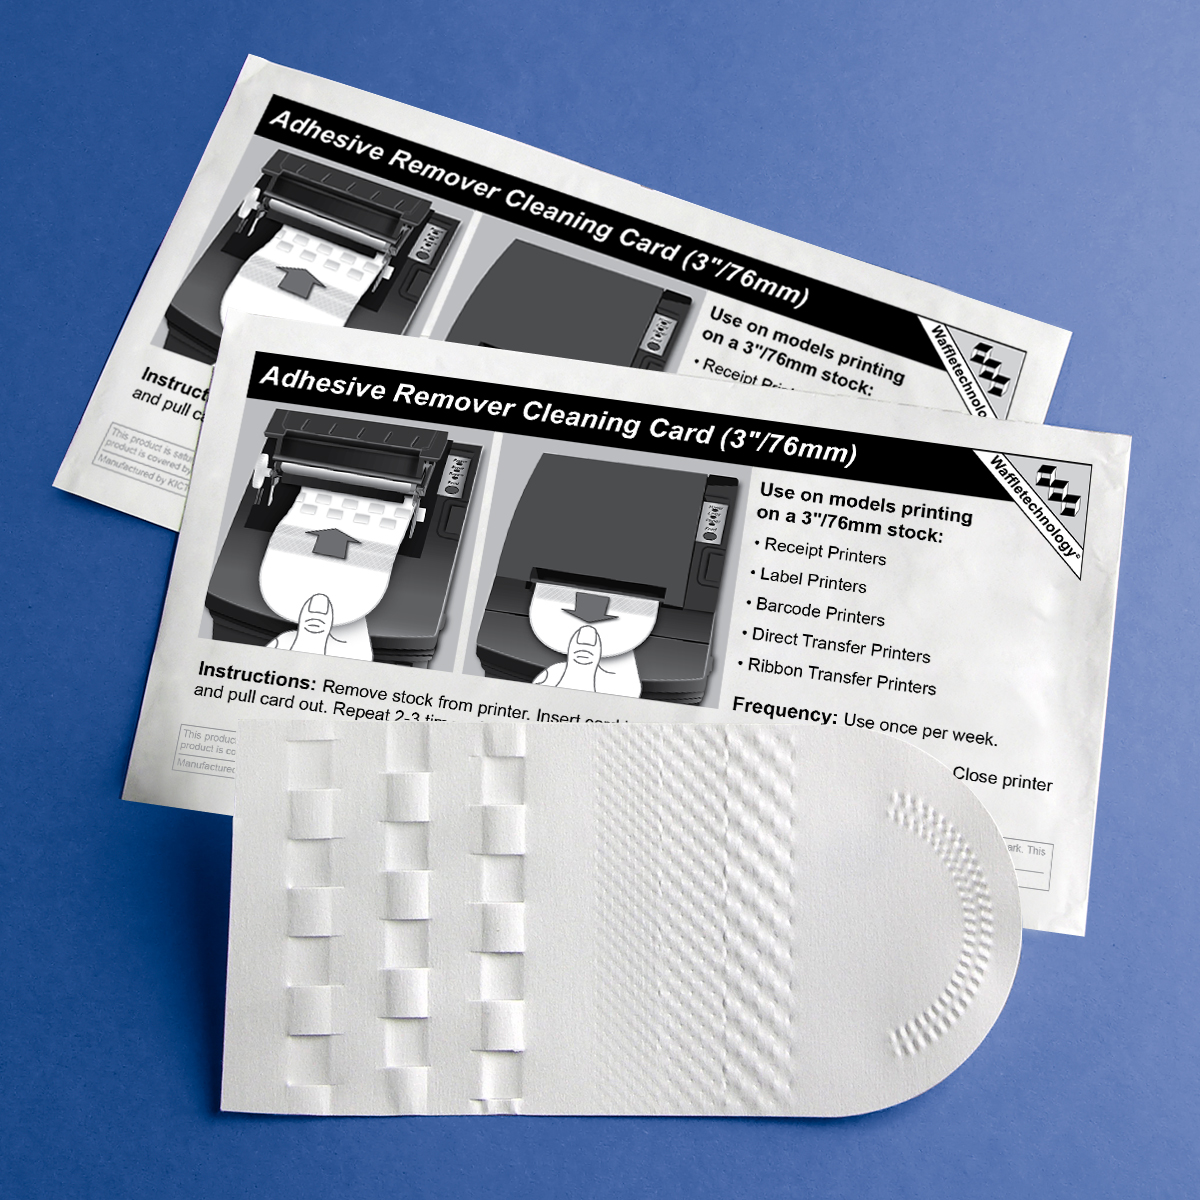 Adhesive Remover Cleaning Card featuring Waffletechnology® (3in/76mm)